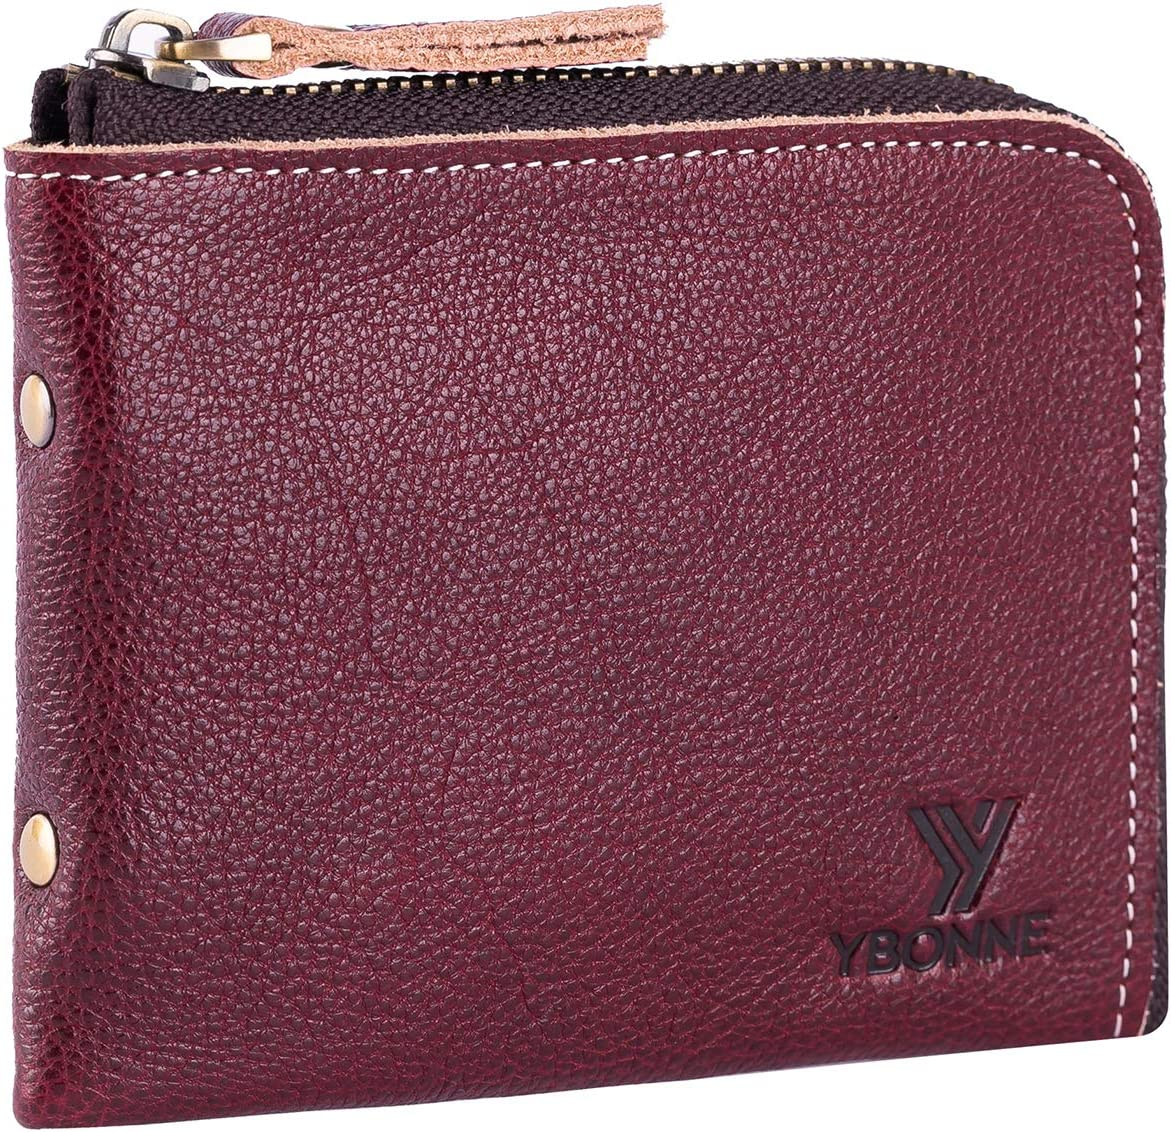 YBONNE Small Mini Corner Zip Wristlet Wallet for Men and Women, Handmade with Italian Vegetable Tanned Leather (Wine Red)